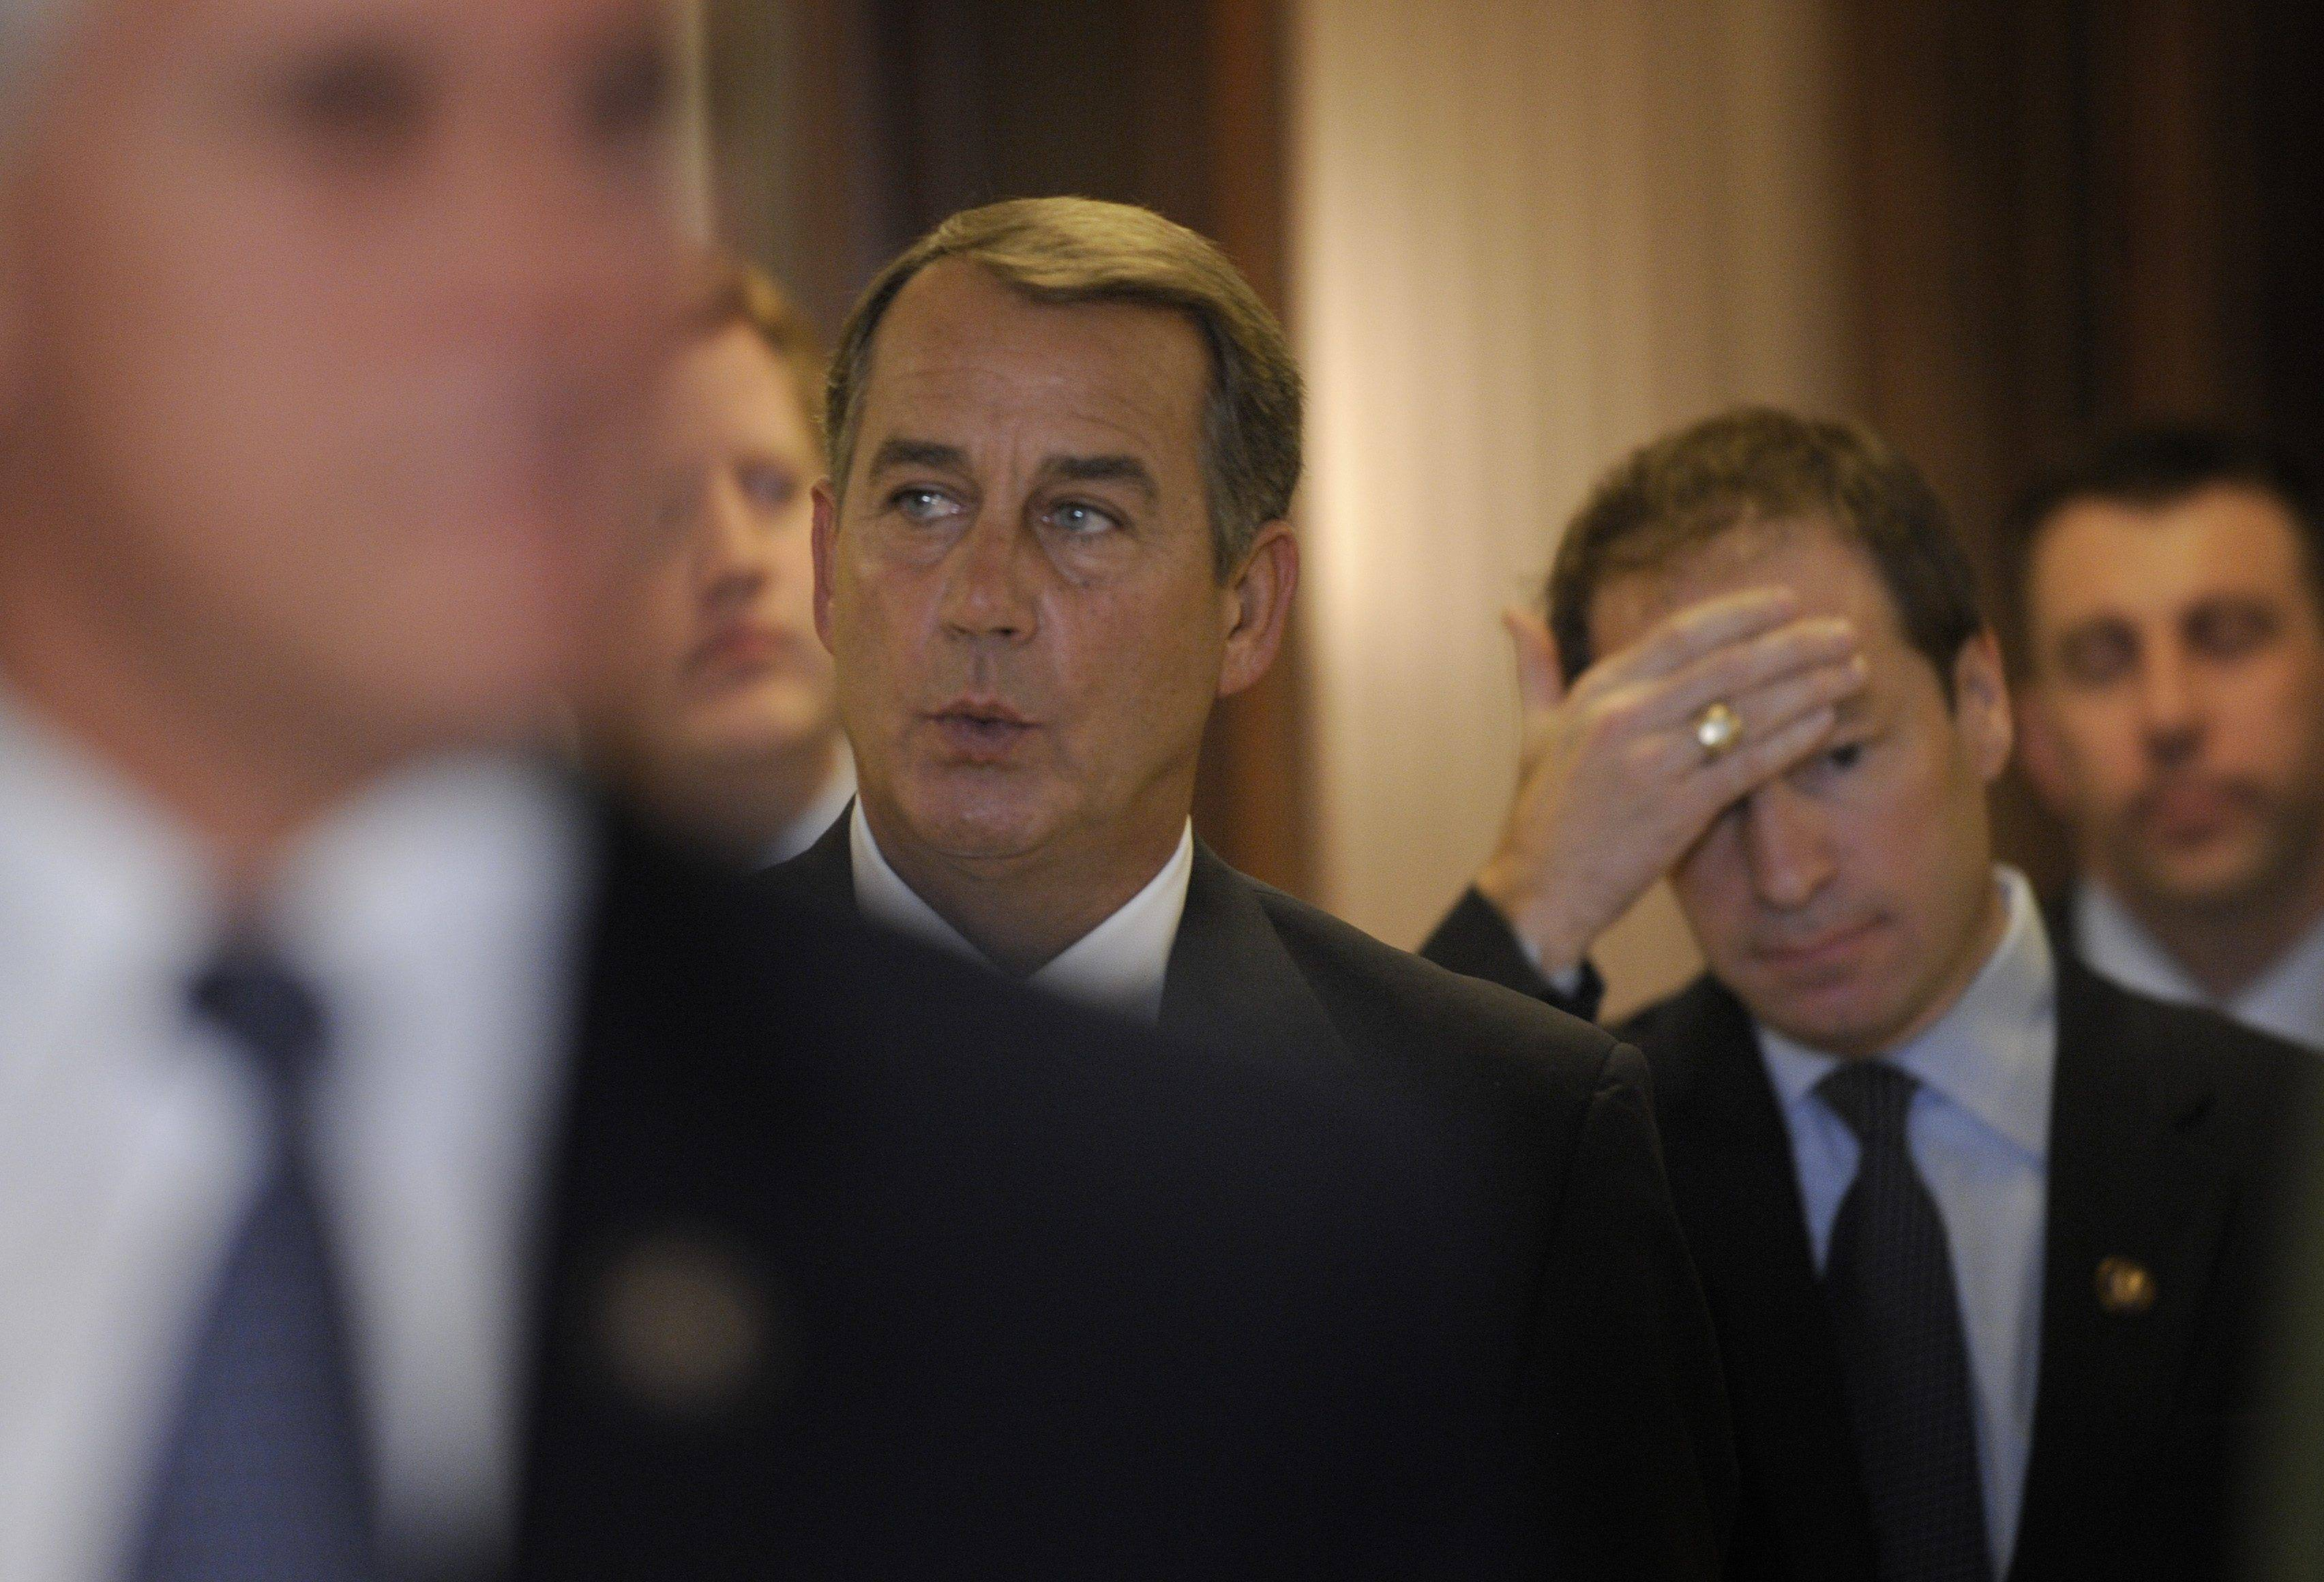 As Boehner retires, Roskam wins support for look at party's future